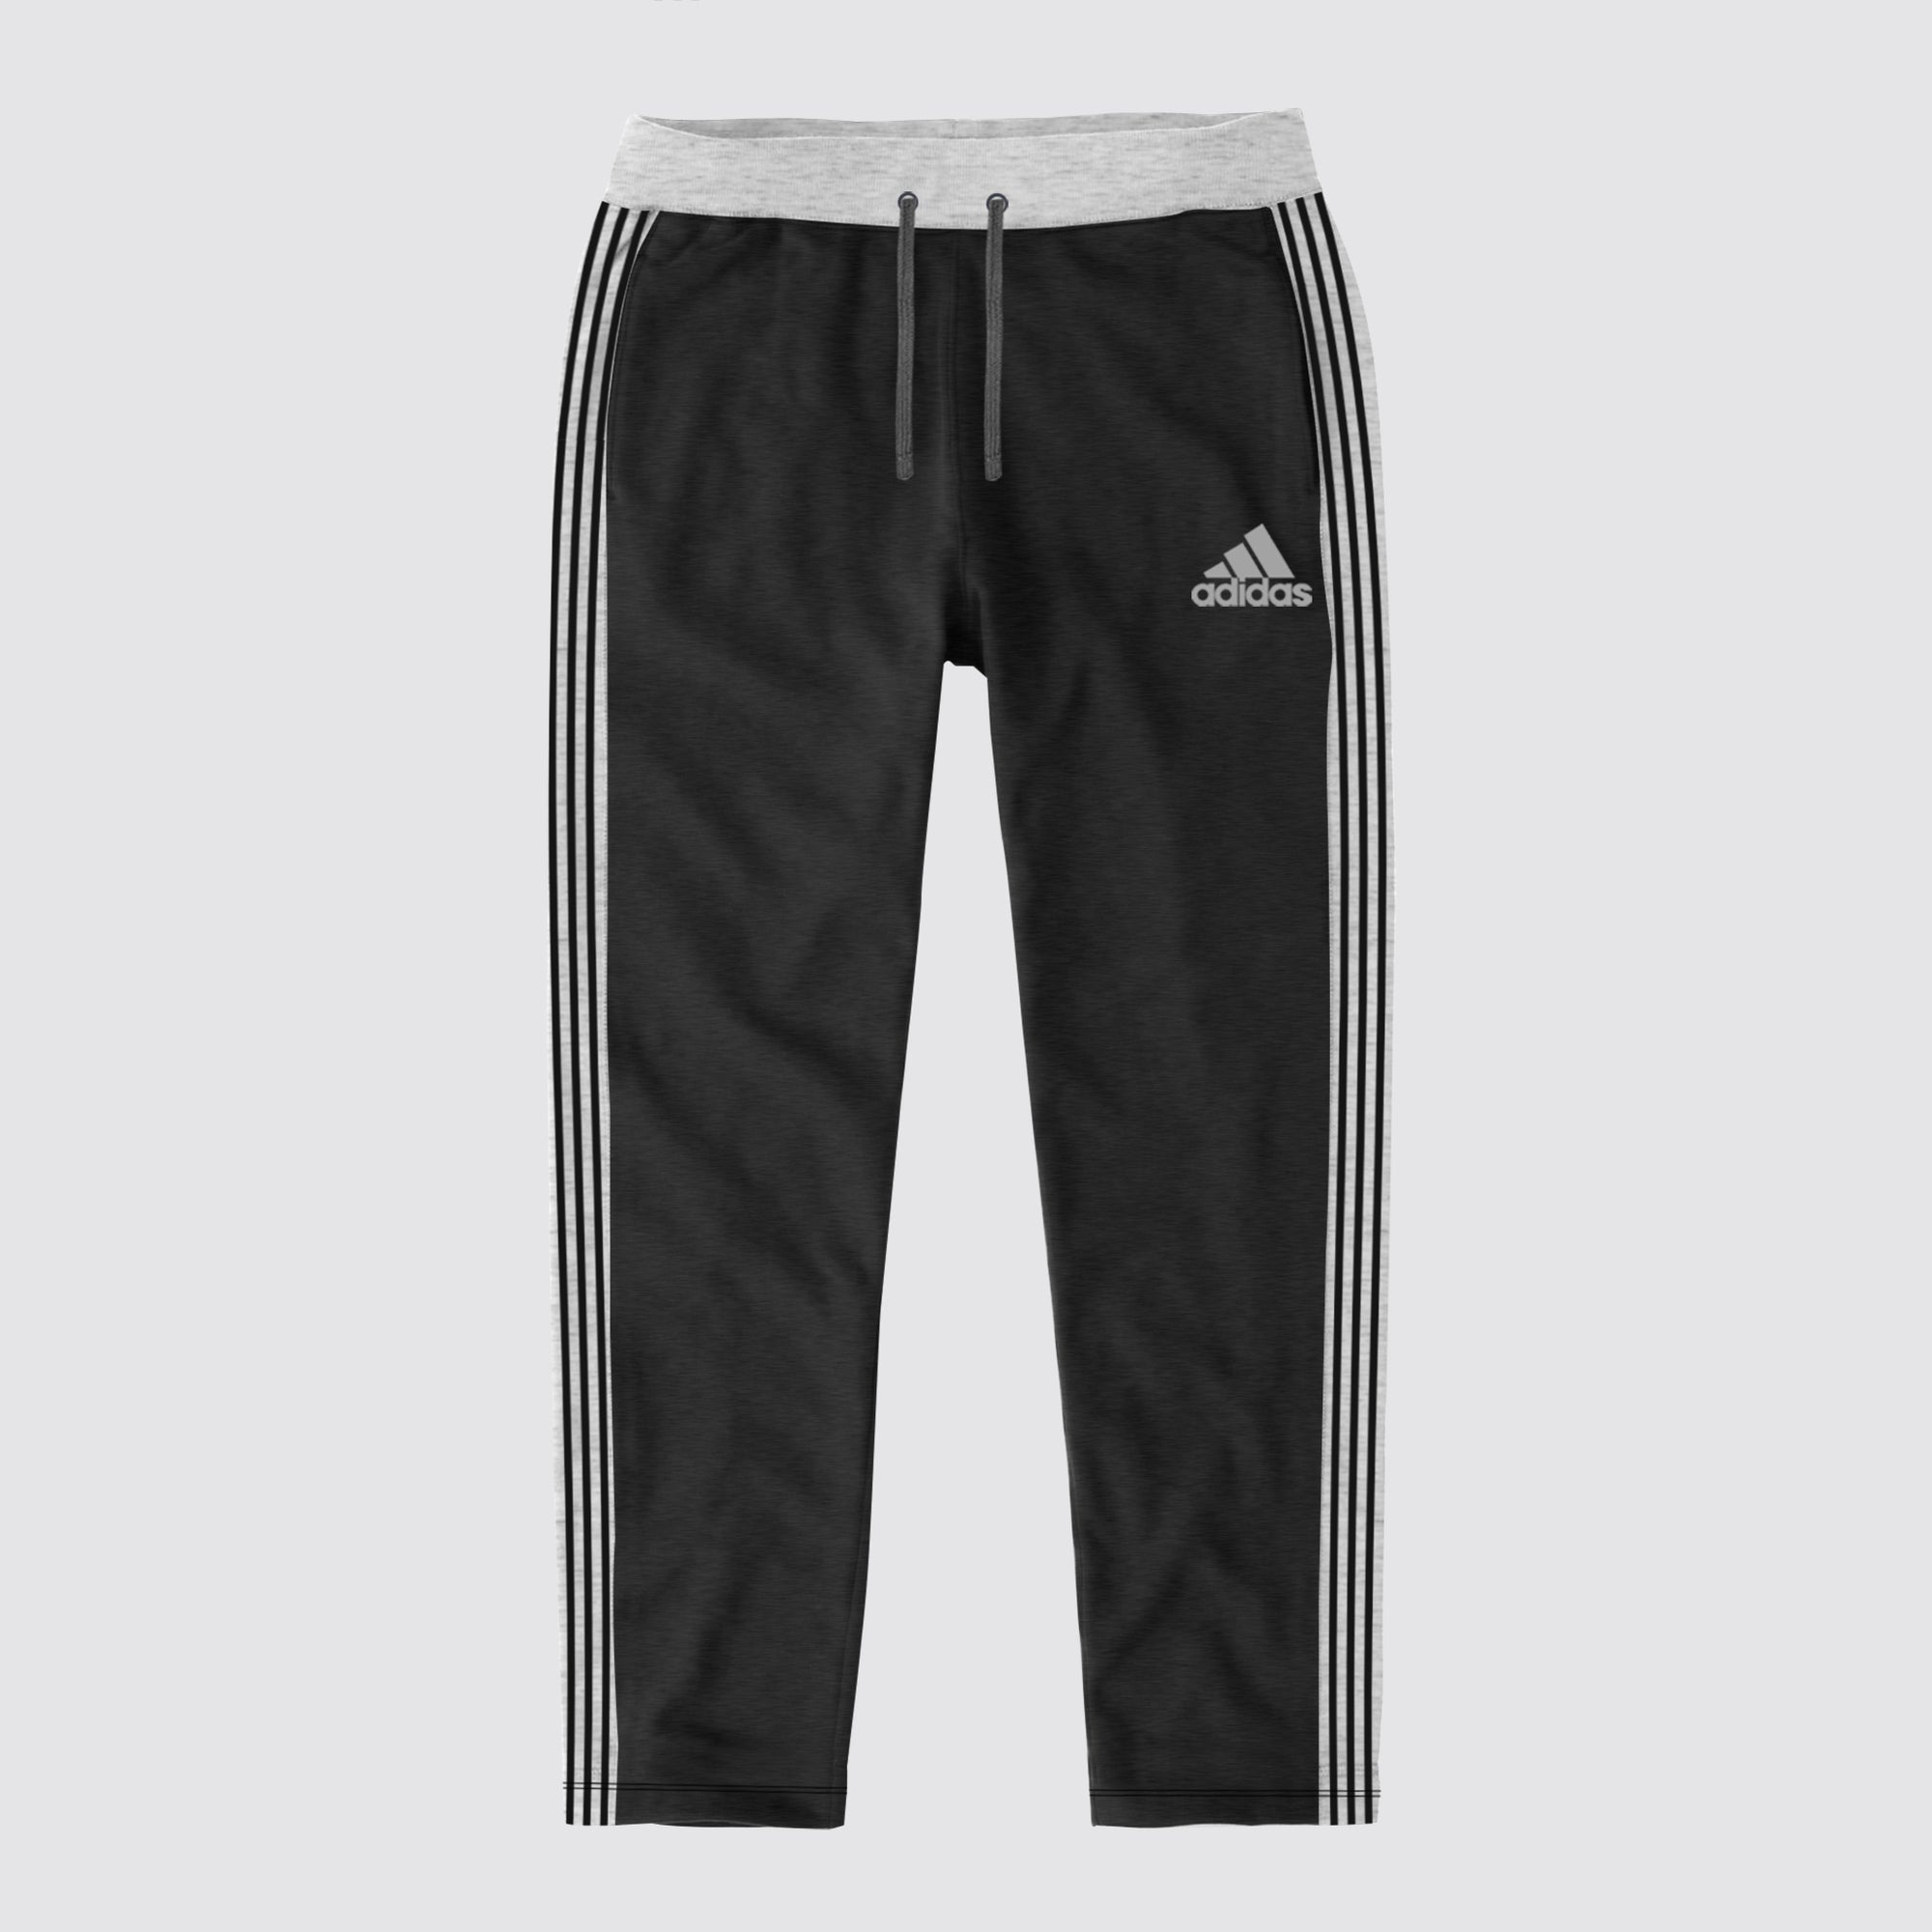 Adidas Single Jersey Regular Fit Trouser For Men-Charcoal Melange with Grey & Black Stripe-BE8656